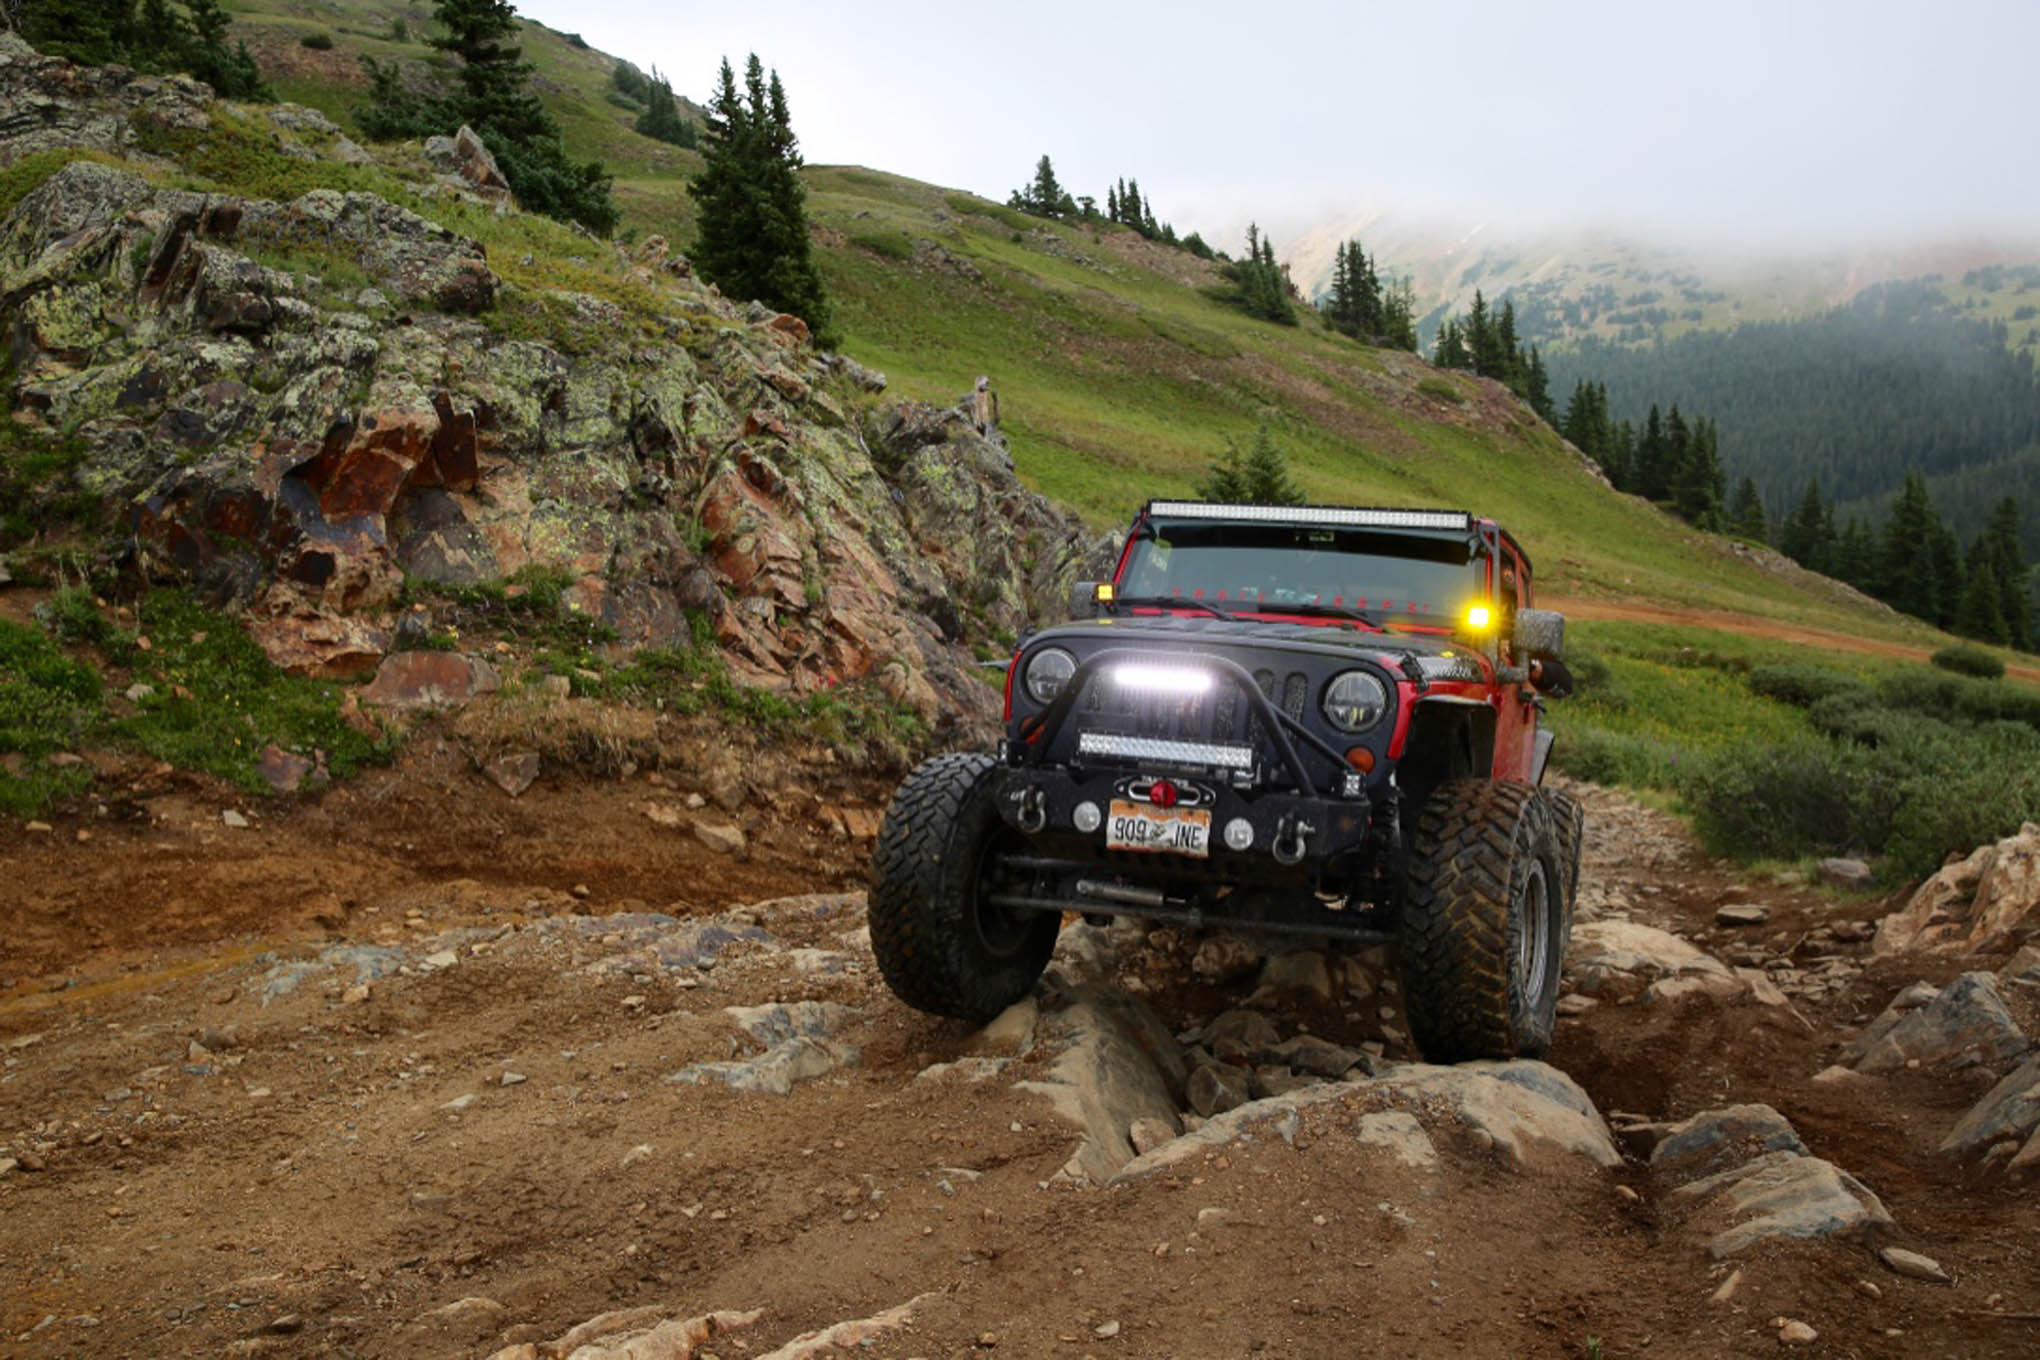 Paul Goodman crawls over a rocky section of Radical Hill in his '11 JK Unlimited Rubicon built by Trail Jeeps.